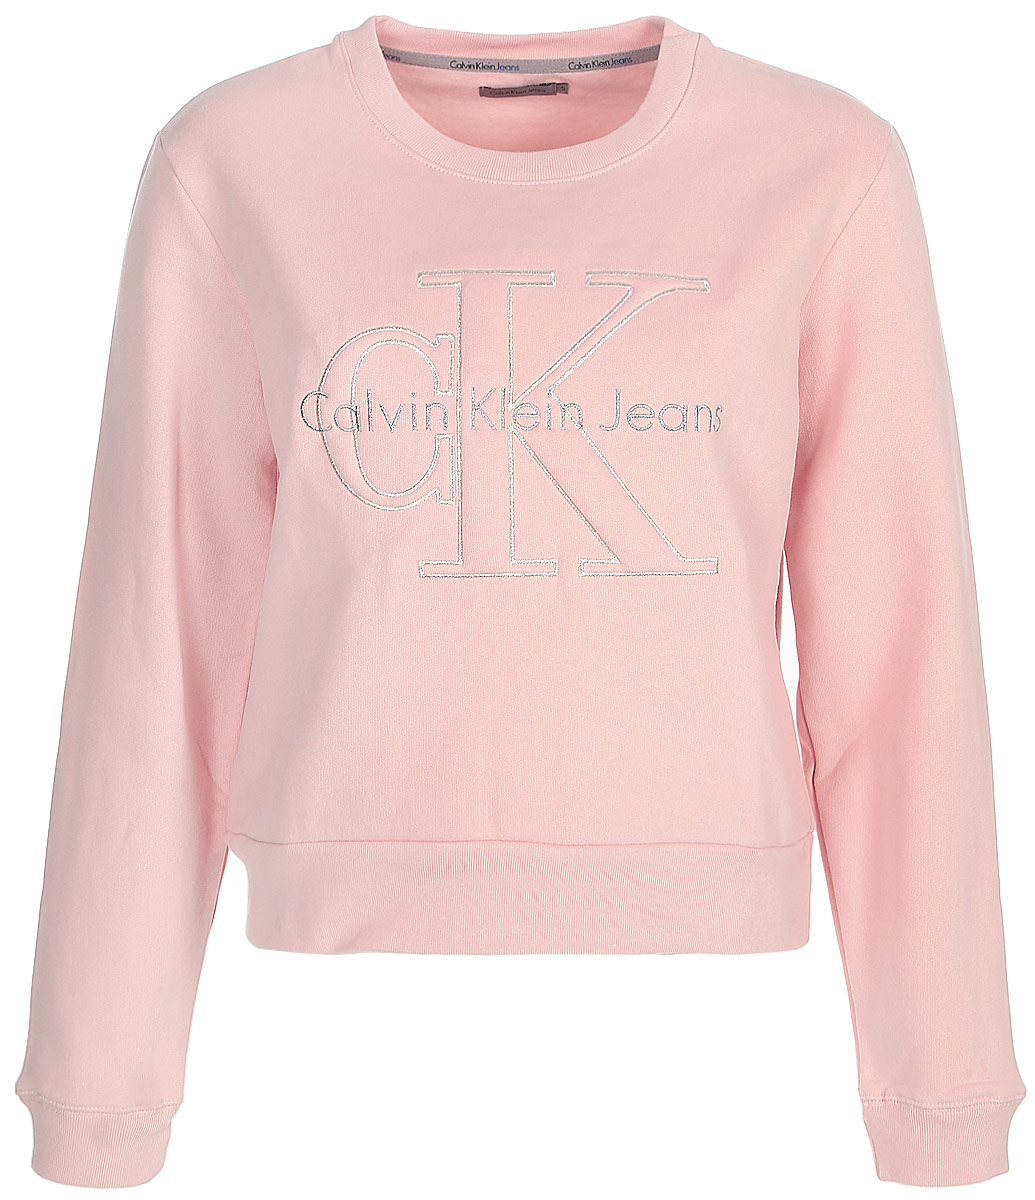 Джемпер женский Calvin Klein Jeans, цвет: розовый. J20J205649_6880. Размер S (42/44) calvin klein women s textured beaded ruched jersey dress 4 black